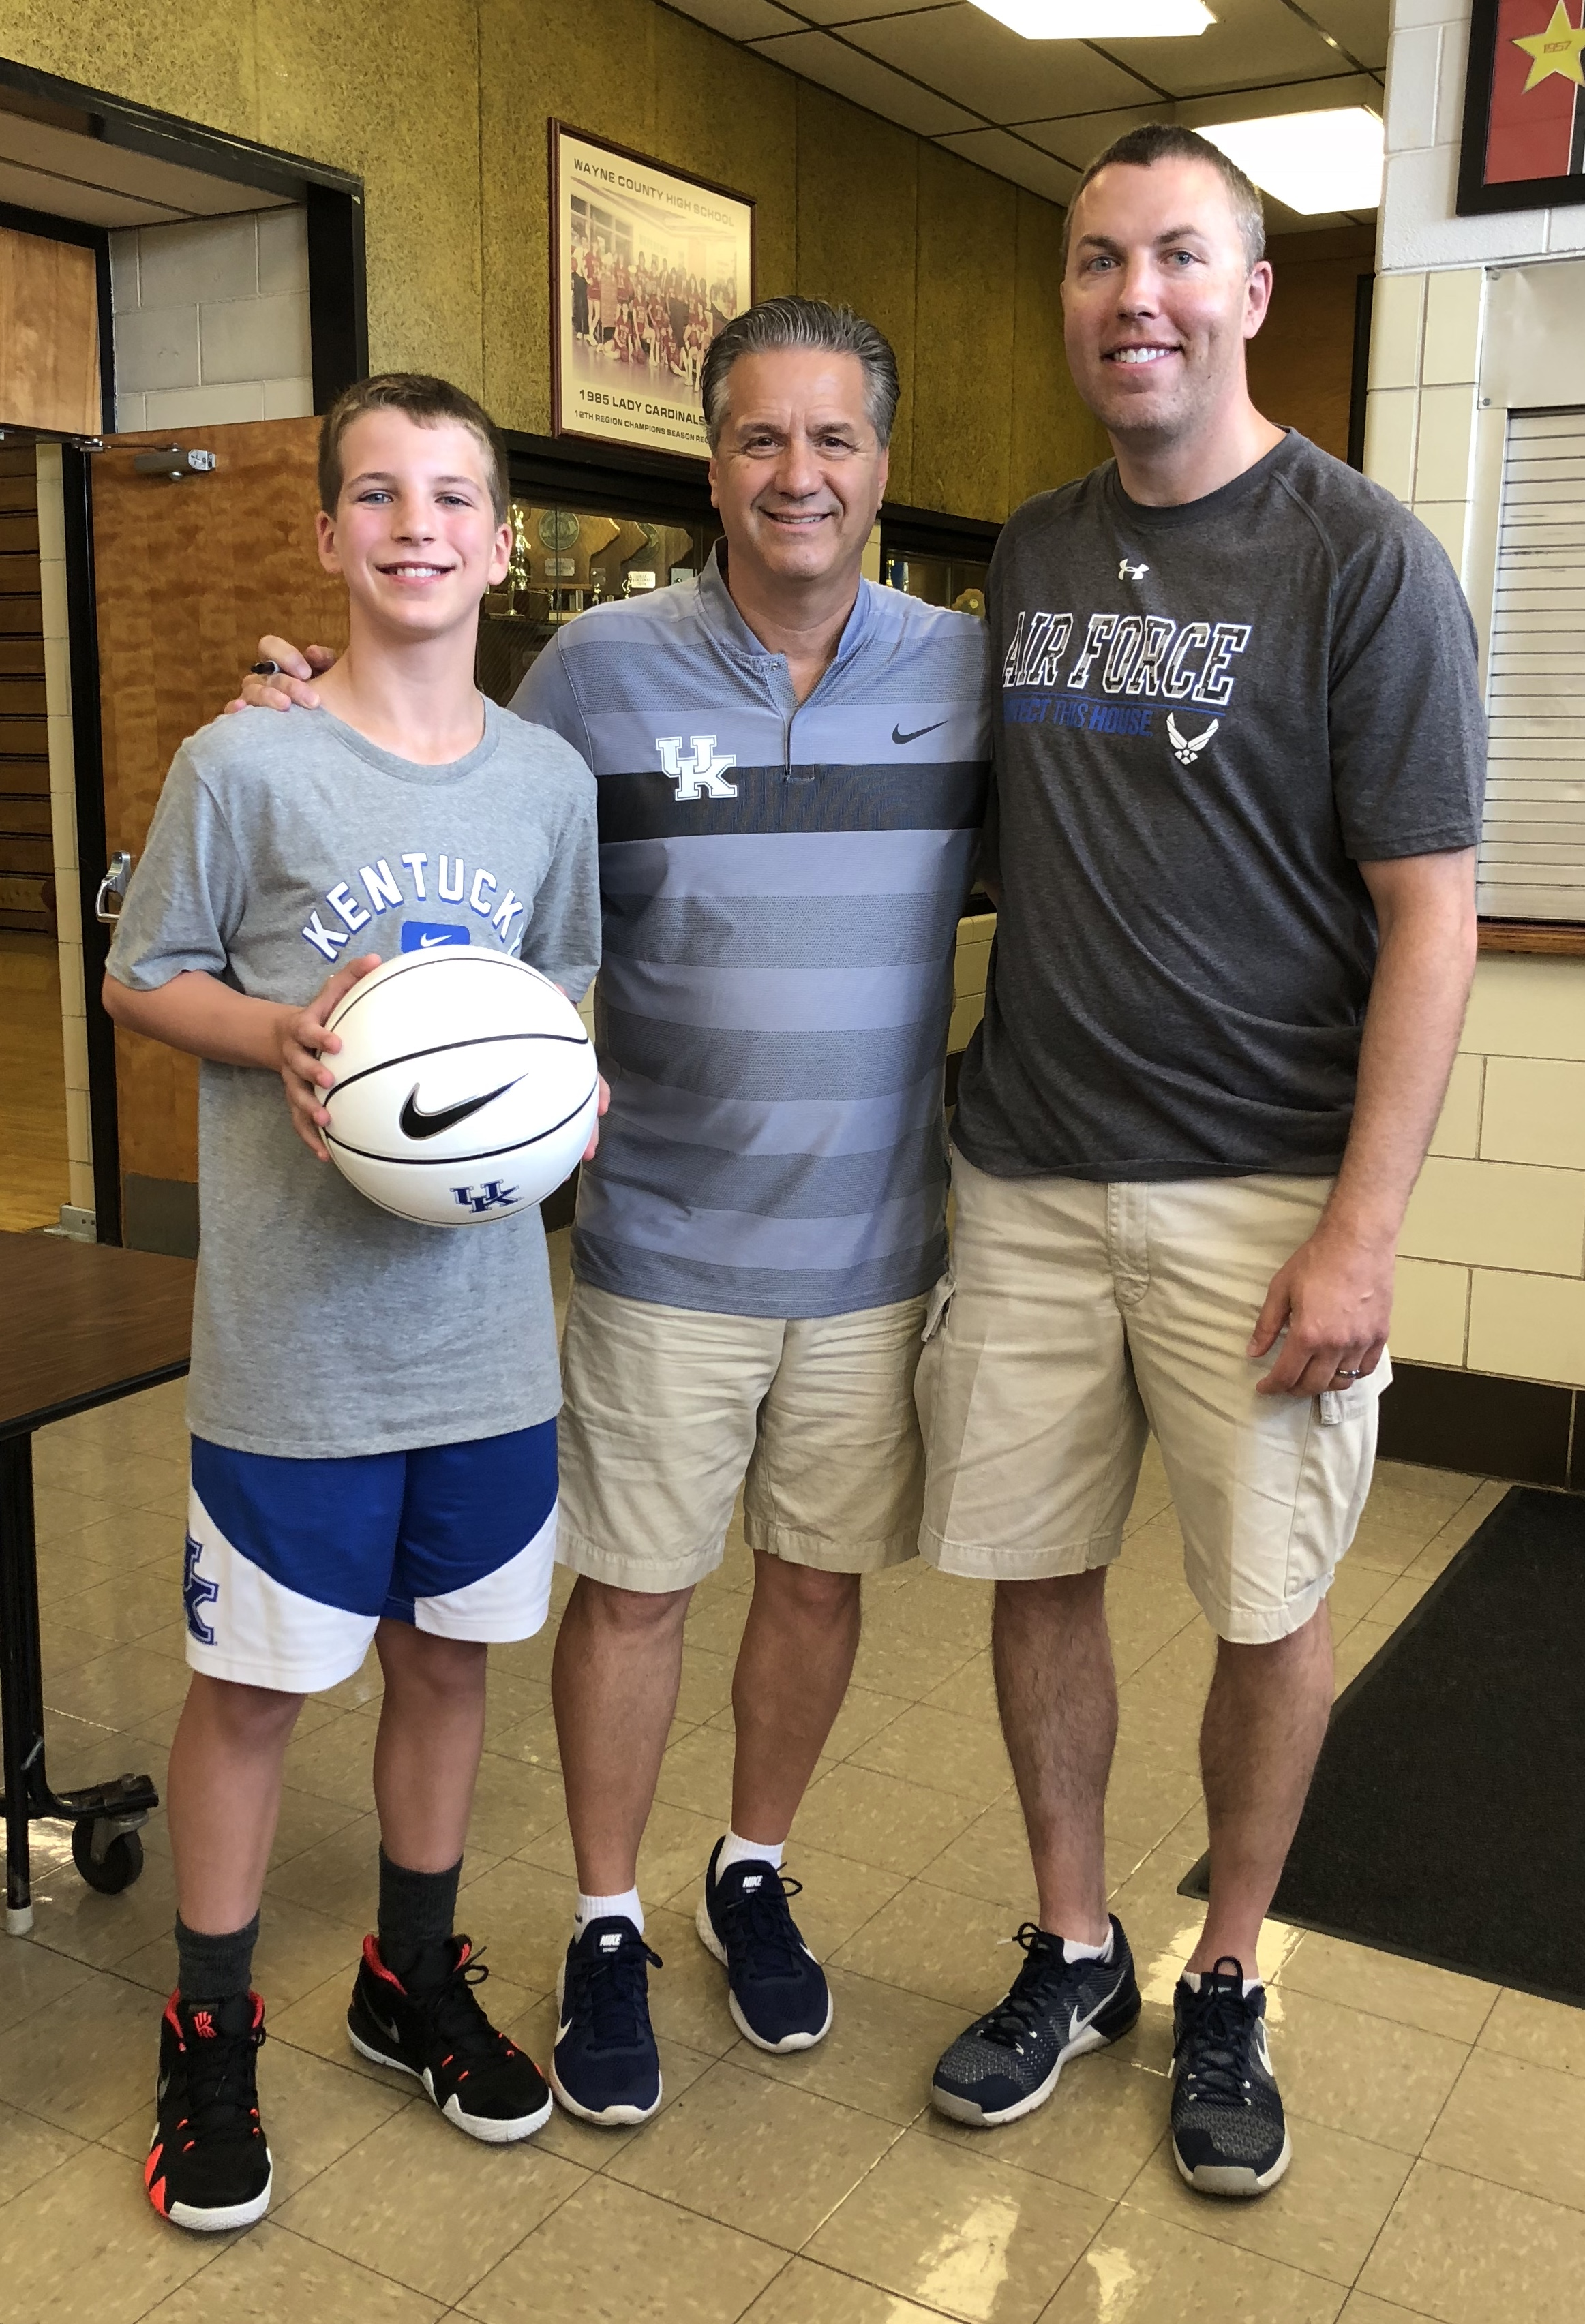 Kendall Phillips (left) and David Phillips (right) smiled with Coach John Calipari following the training clinic